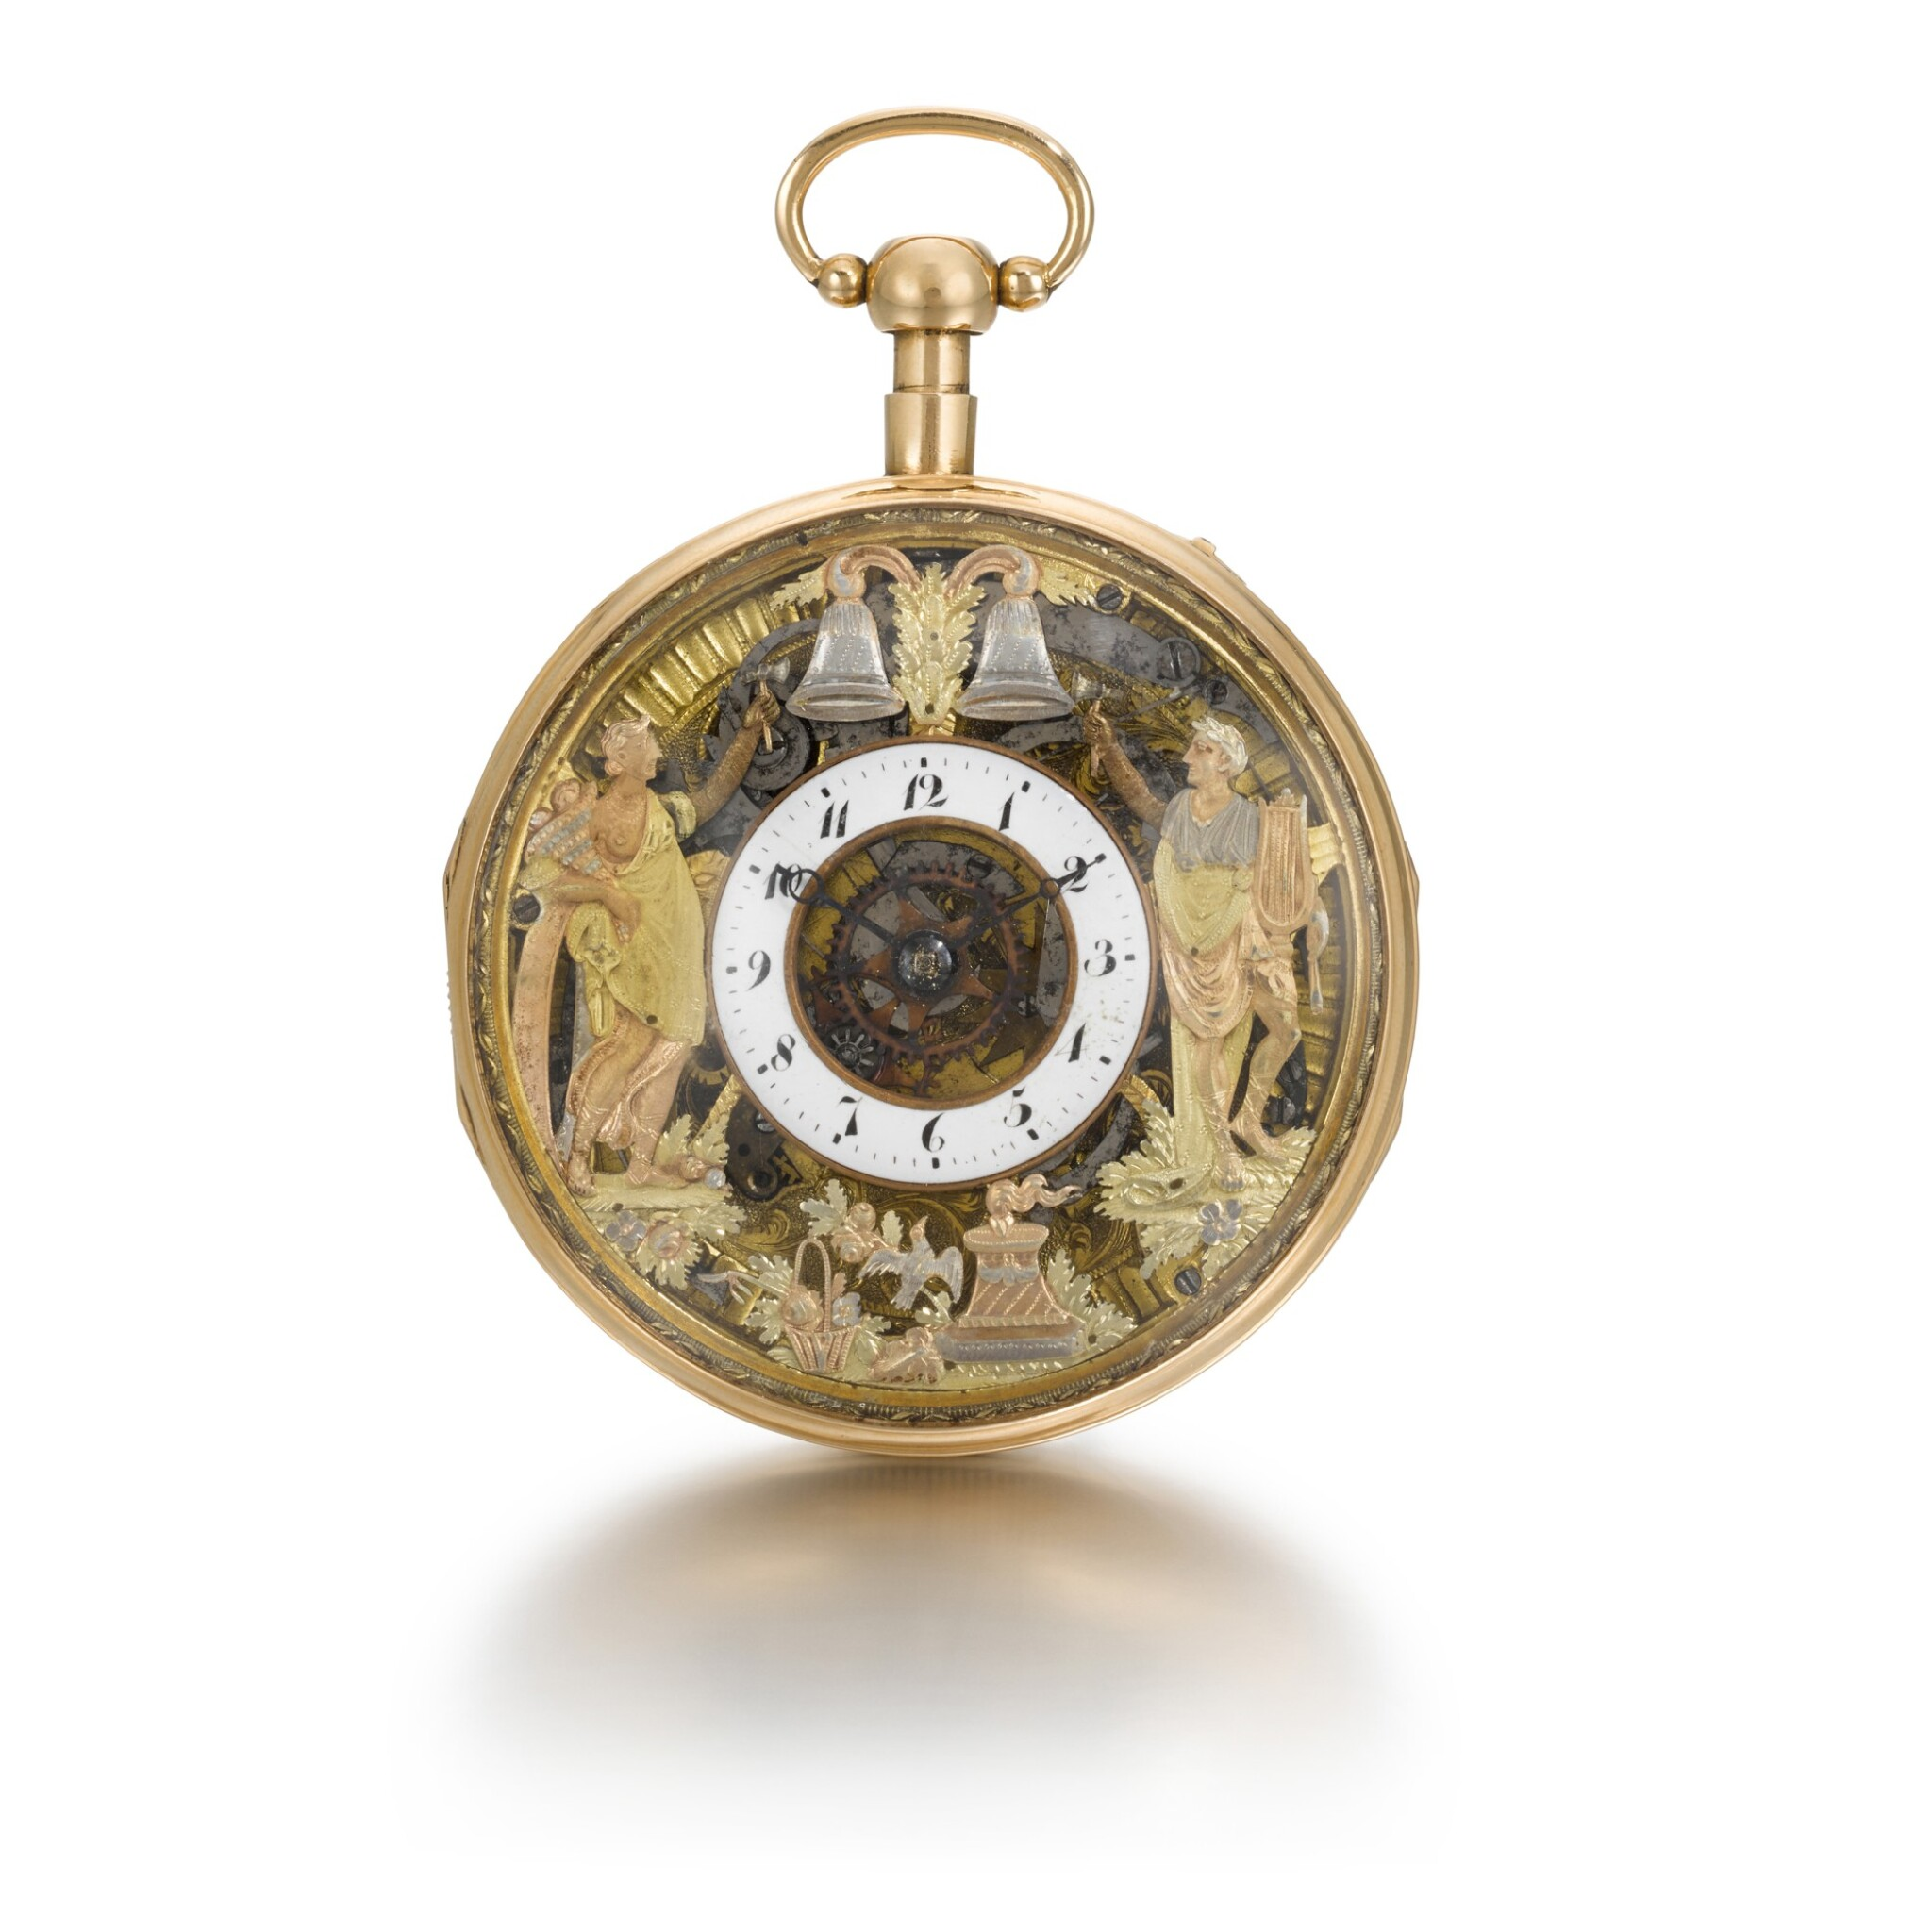 View full screen - View 1 of Lot 286. ROMILLY & COMPE   A GOLD QUARTER REPEATING AUTOMATON WATCH WITH JACQUEMARTS, CIRCA 1790 NO. 5089.